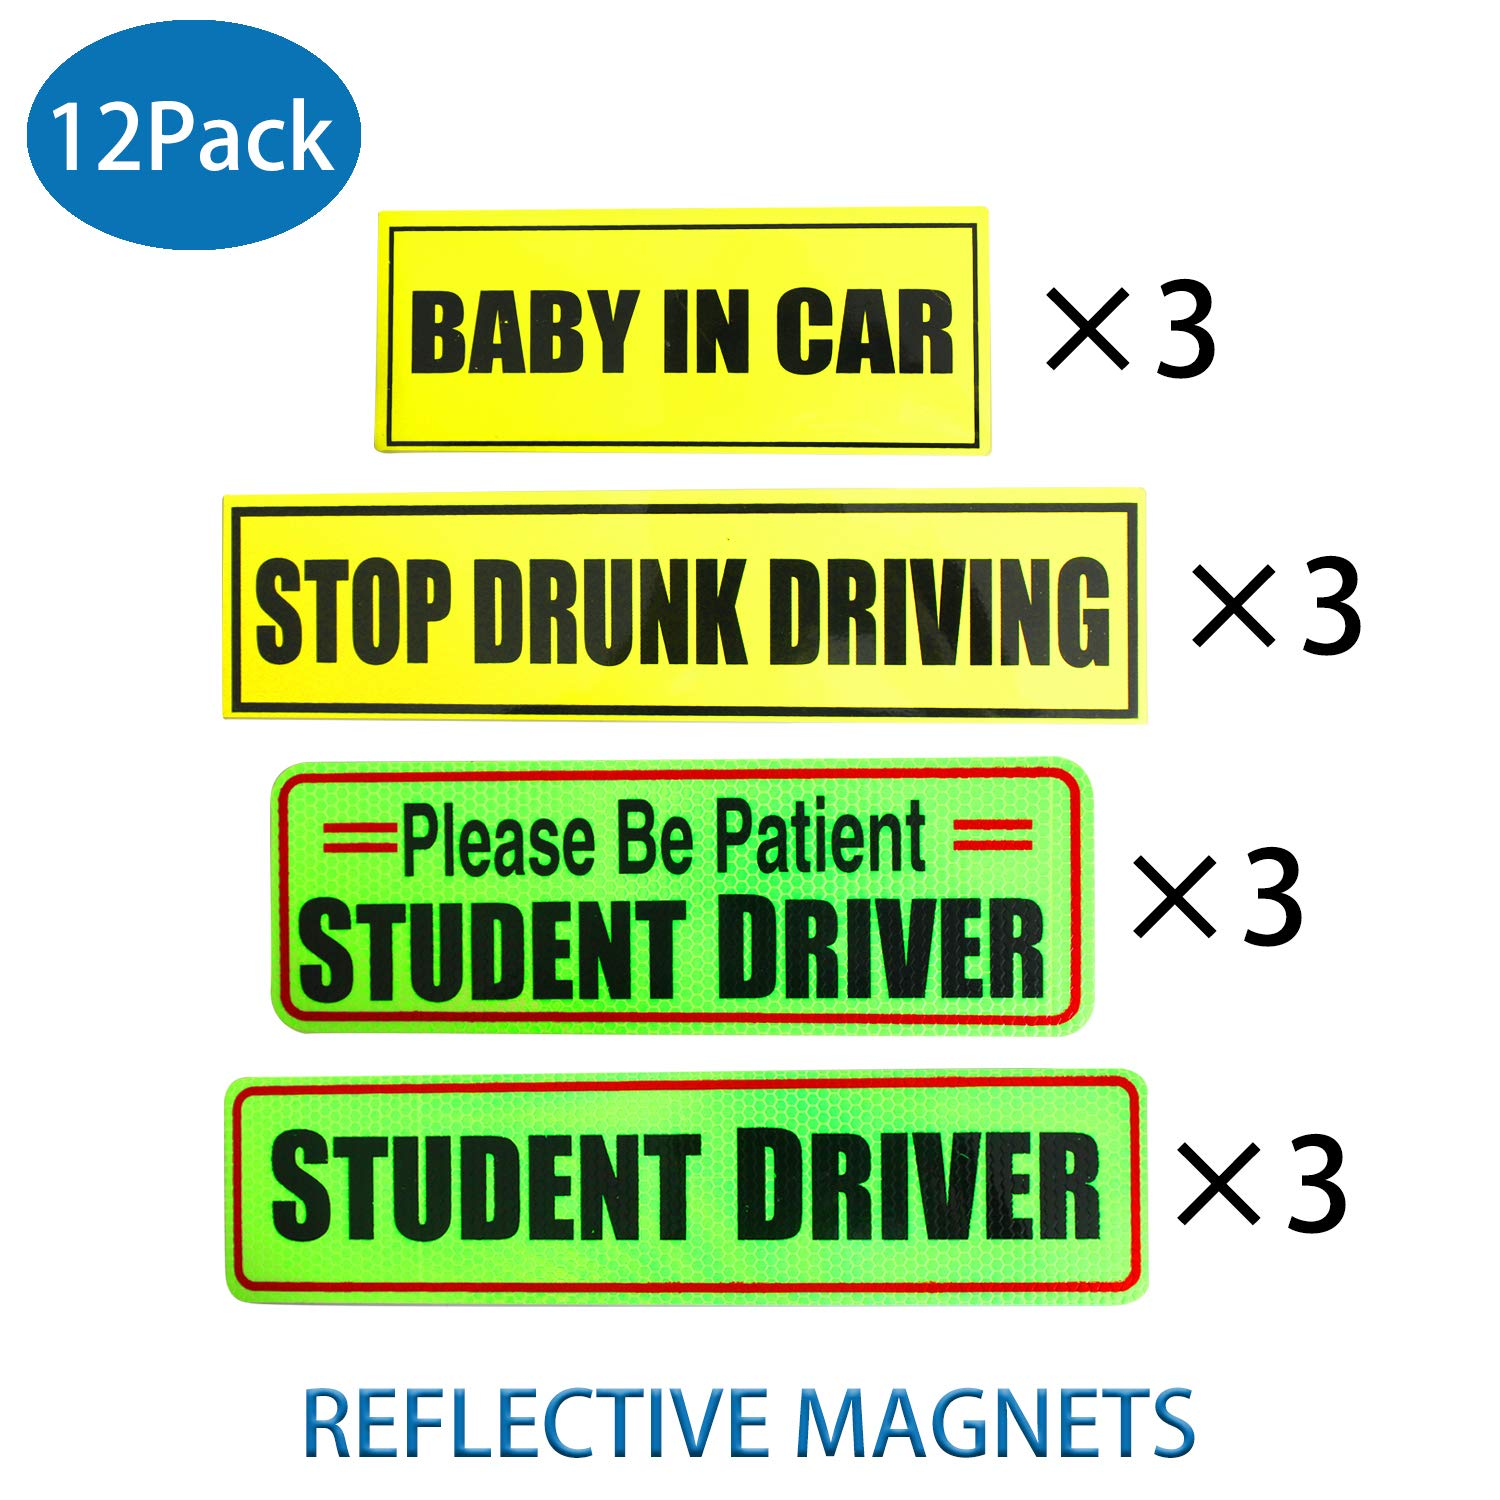 Student driver magnet bumper stickers car signs baby in car safety signs stop drunk driving car sticker reflective magnetic set of 12 for the novice car